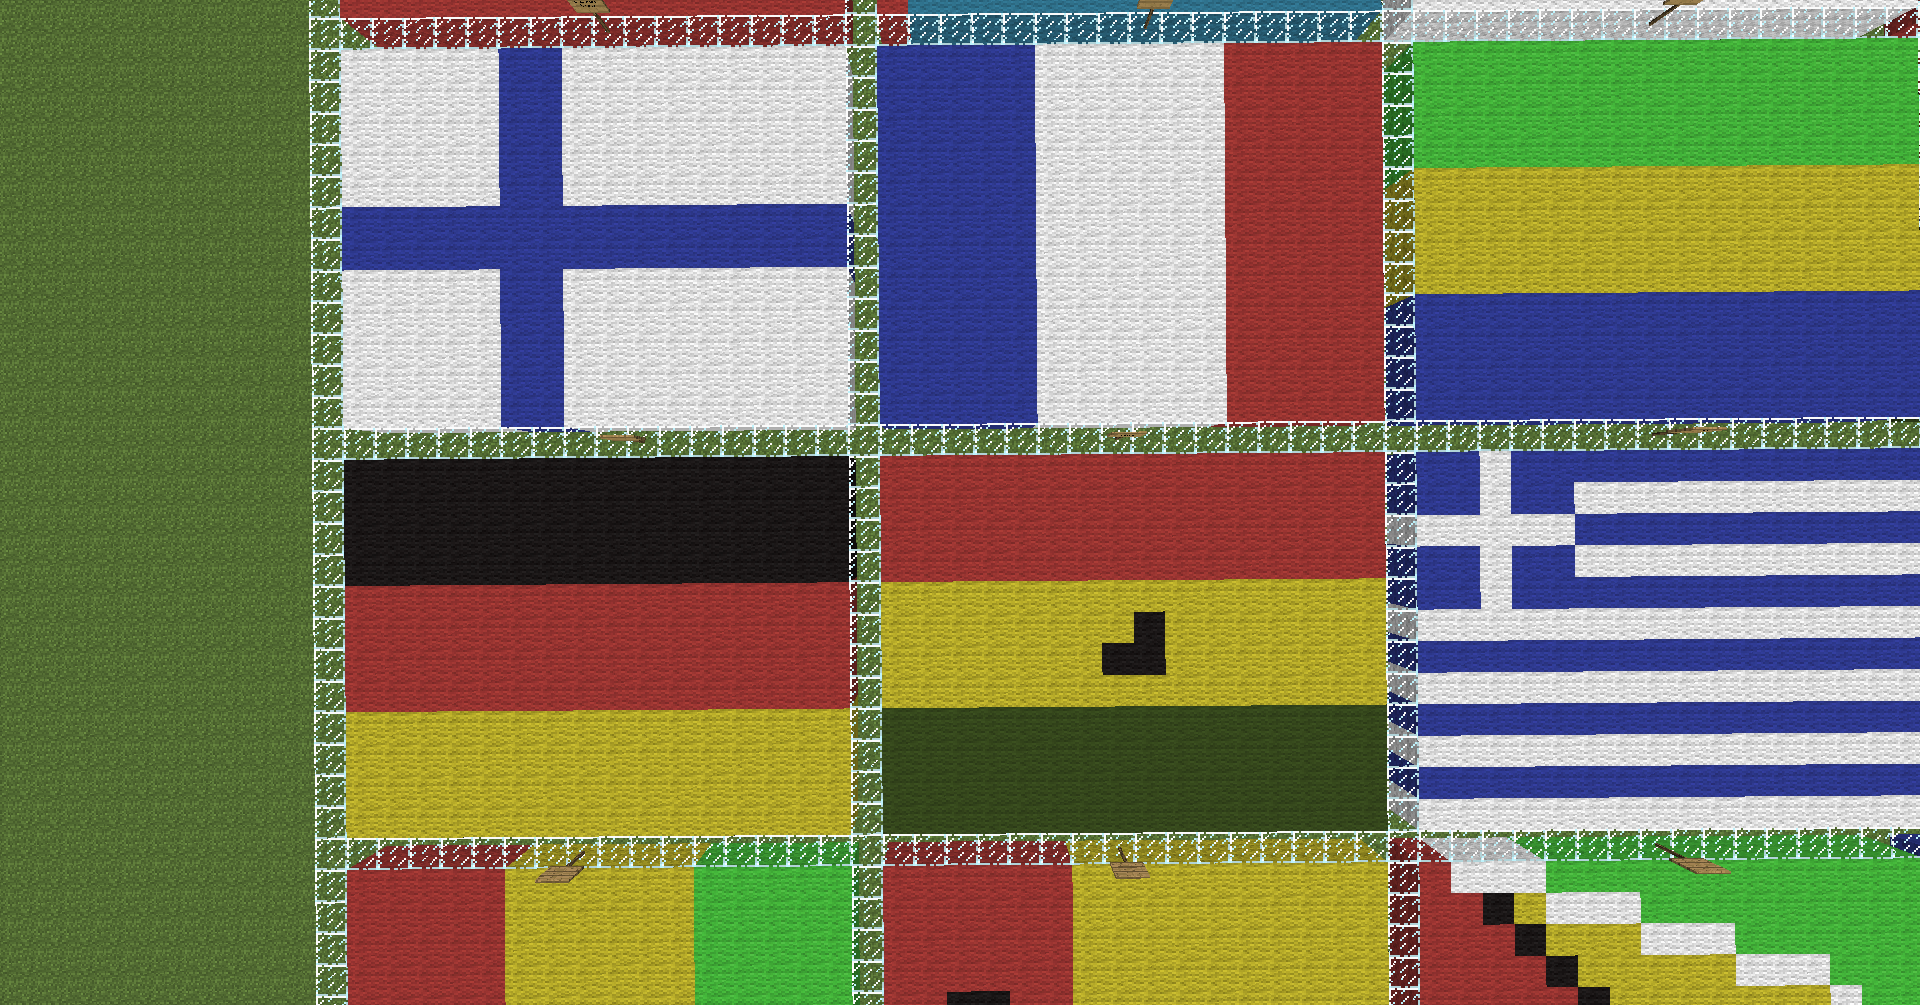 maps for minecraft pc with Minecraft 1 7 Les Drapeaux Dans Minecraft on Minecraft 1 7 Les Drapeaux Dans Minecraft in addition Texture Minecraft 539 Tiny Pixels also Downloads further Fan Recreates Black Ops Nuketown In Gta Online furthermore Skin Anima.